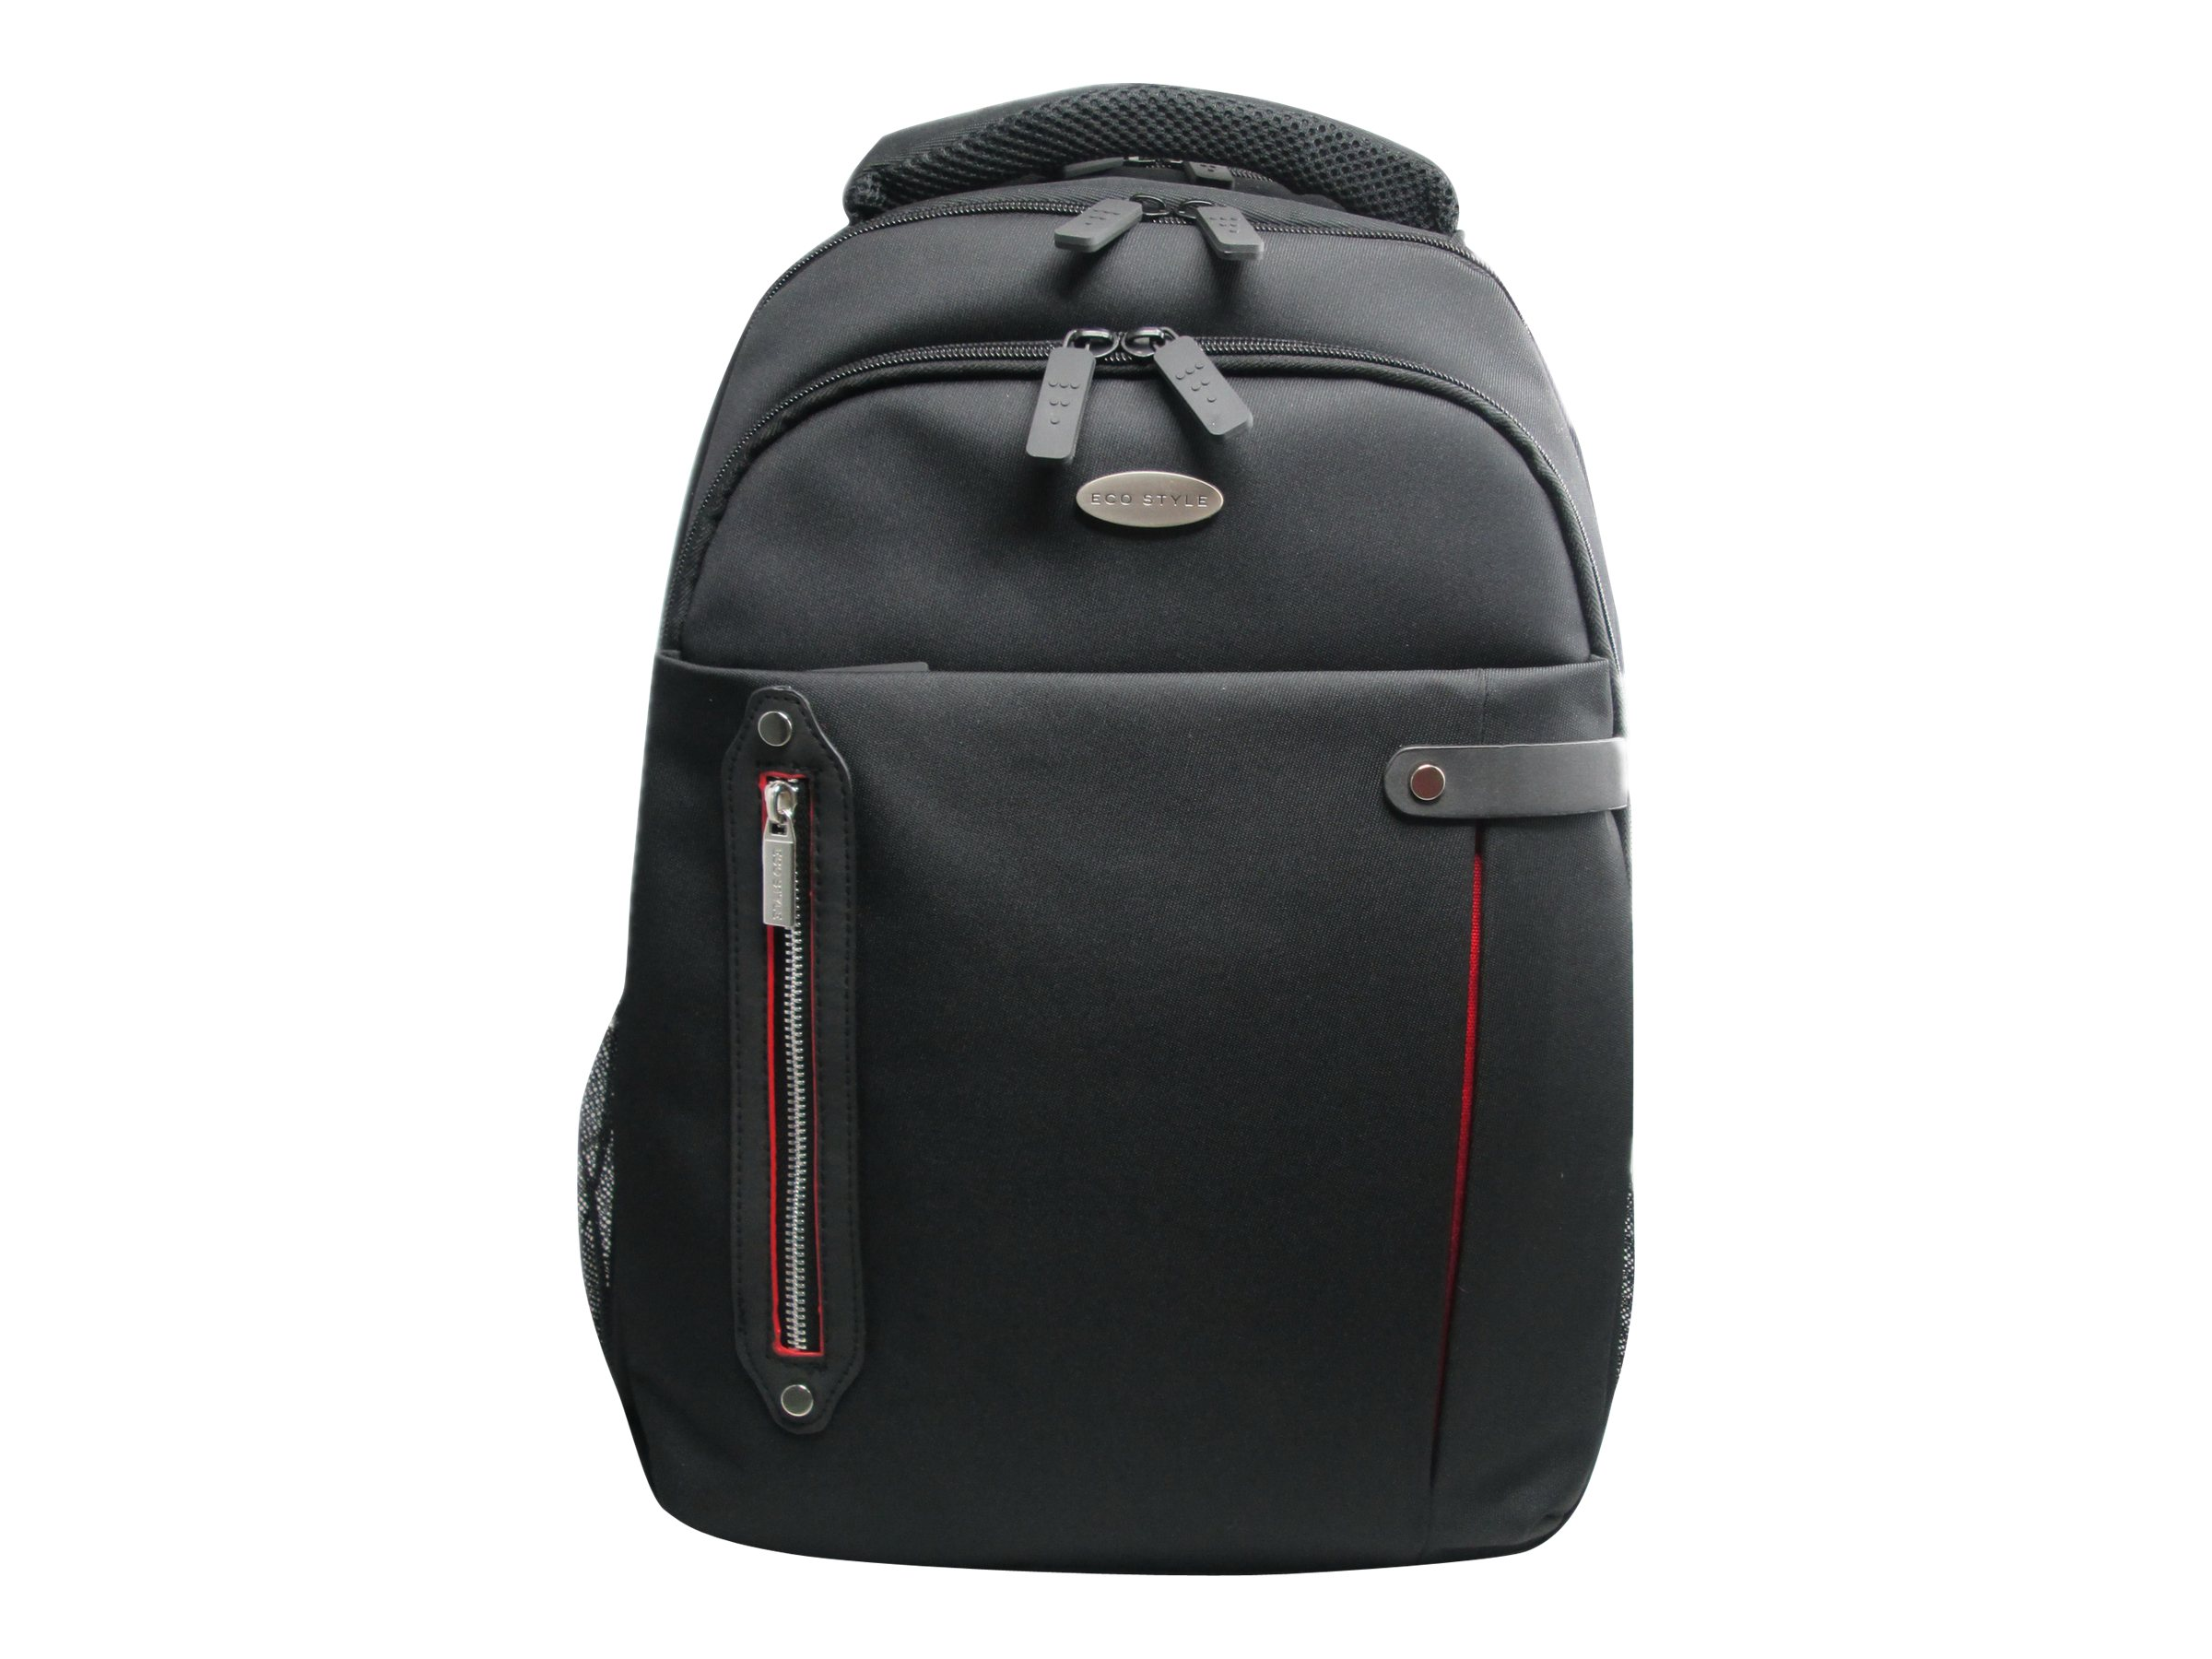 Eco Style Tech Pro Backpack Checkpoint Friendly, ETPR-BP16-CF